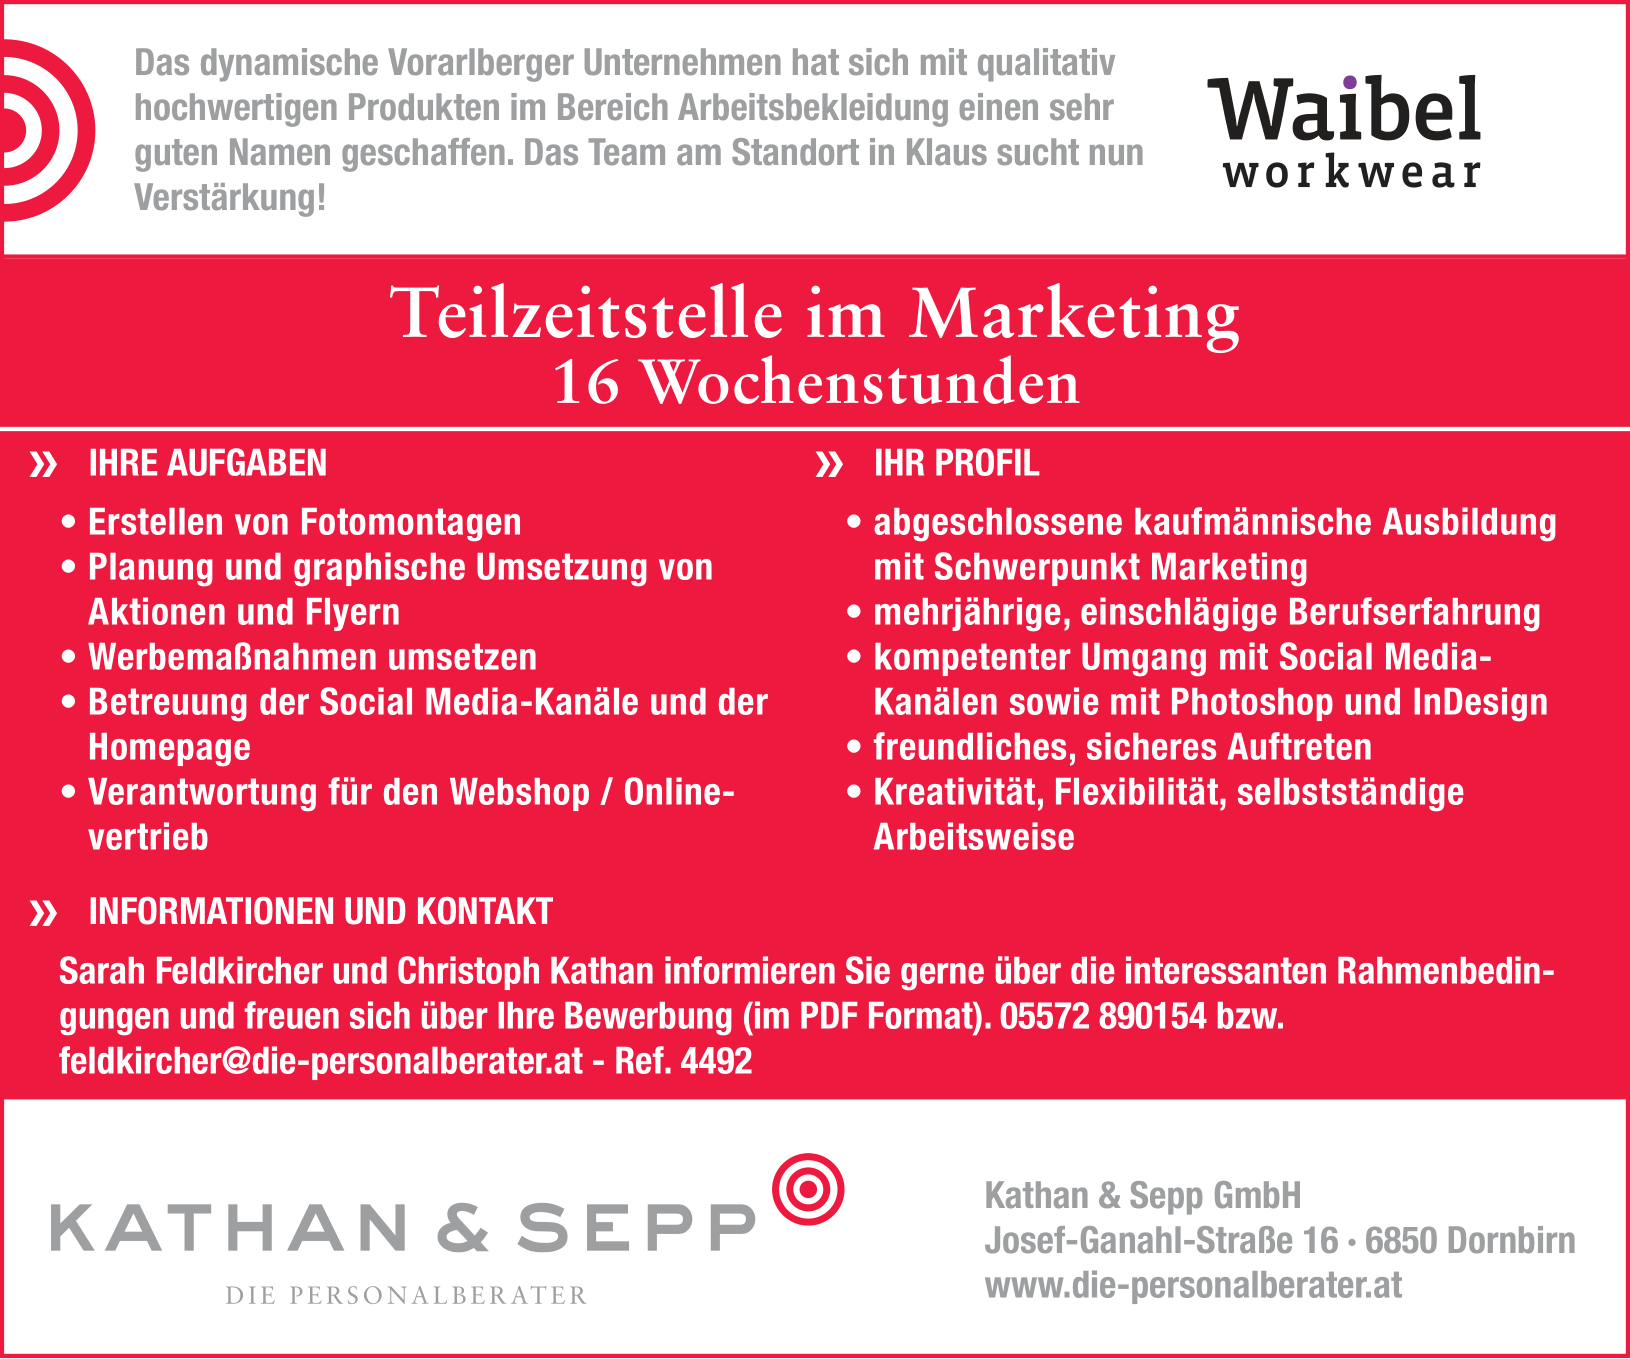 Teilzeitstelle im Marketing